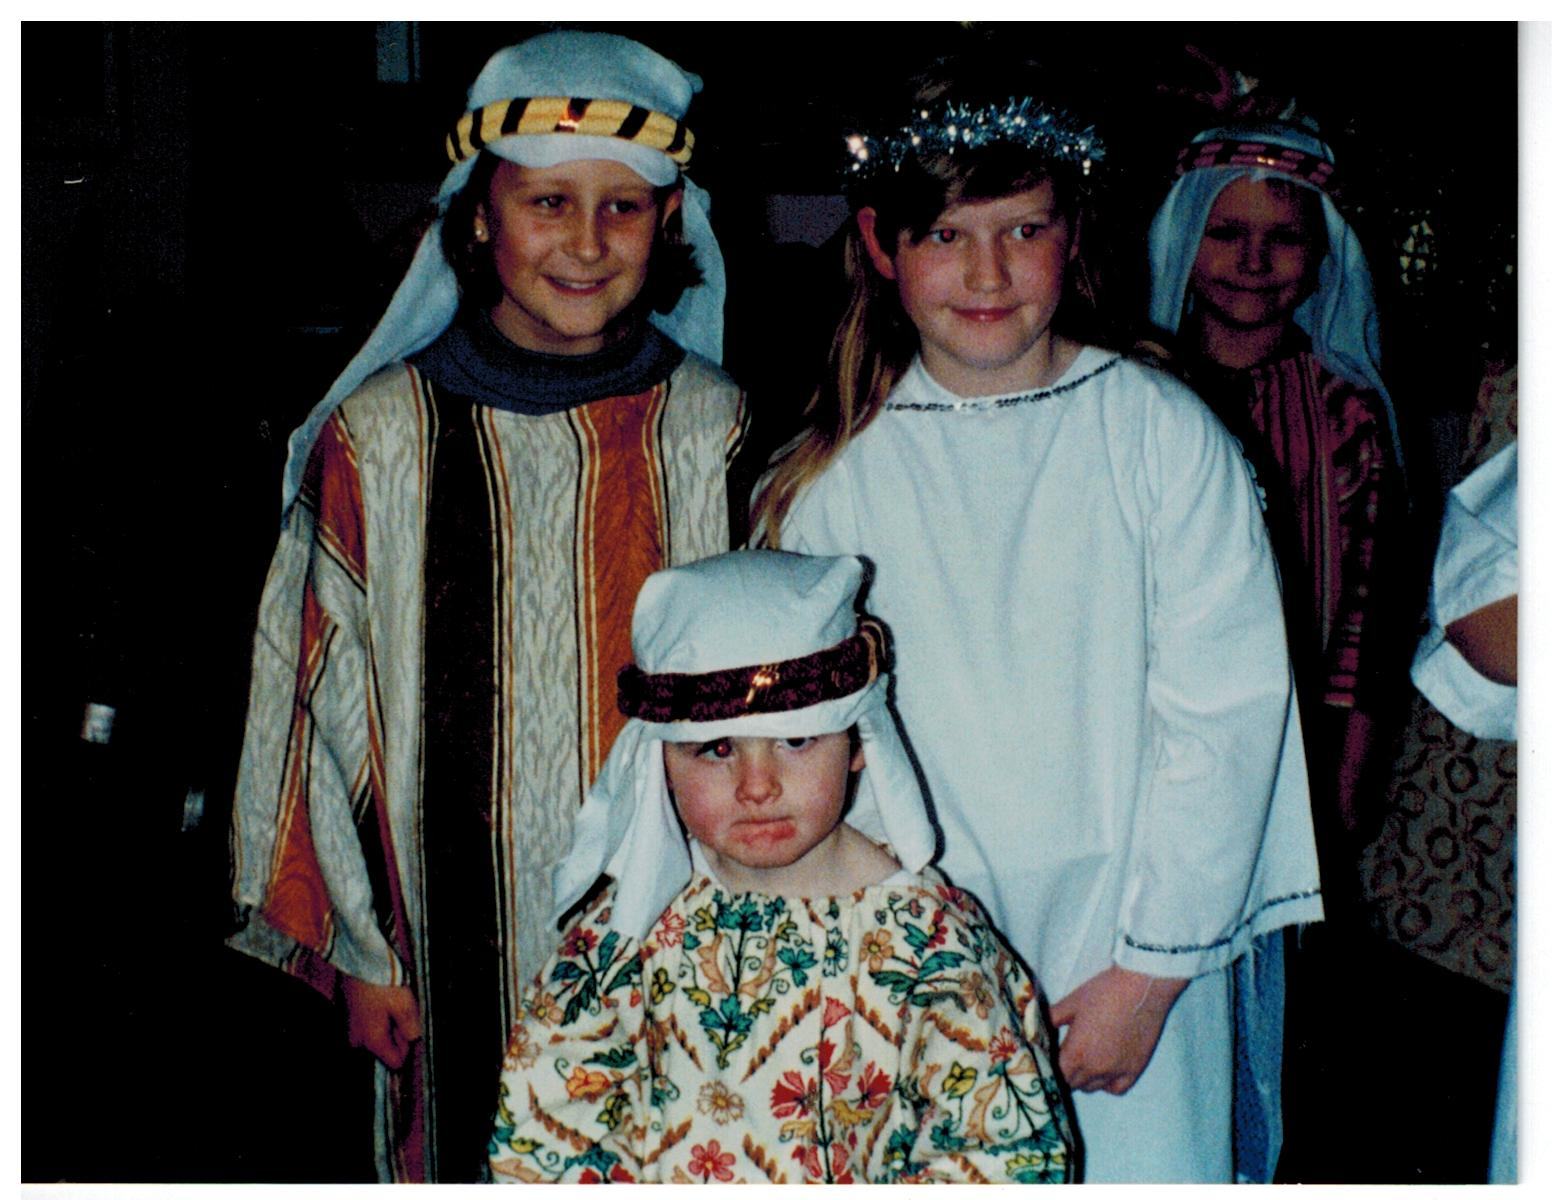 I013_Nativity_Play-1994